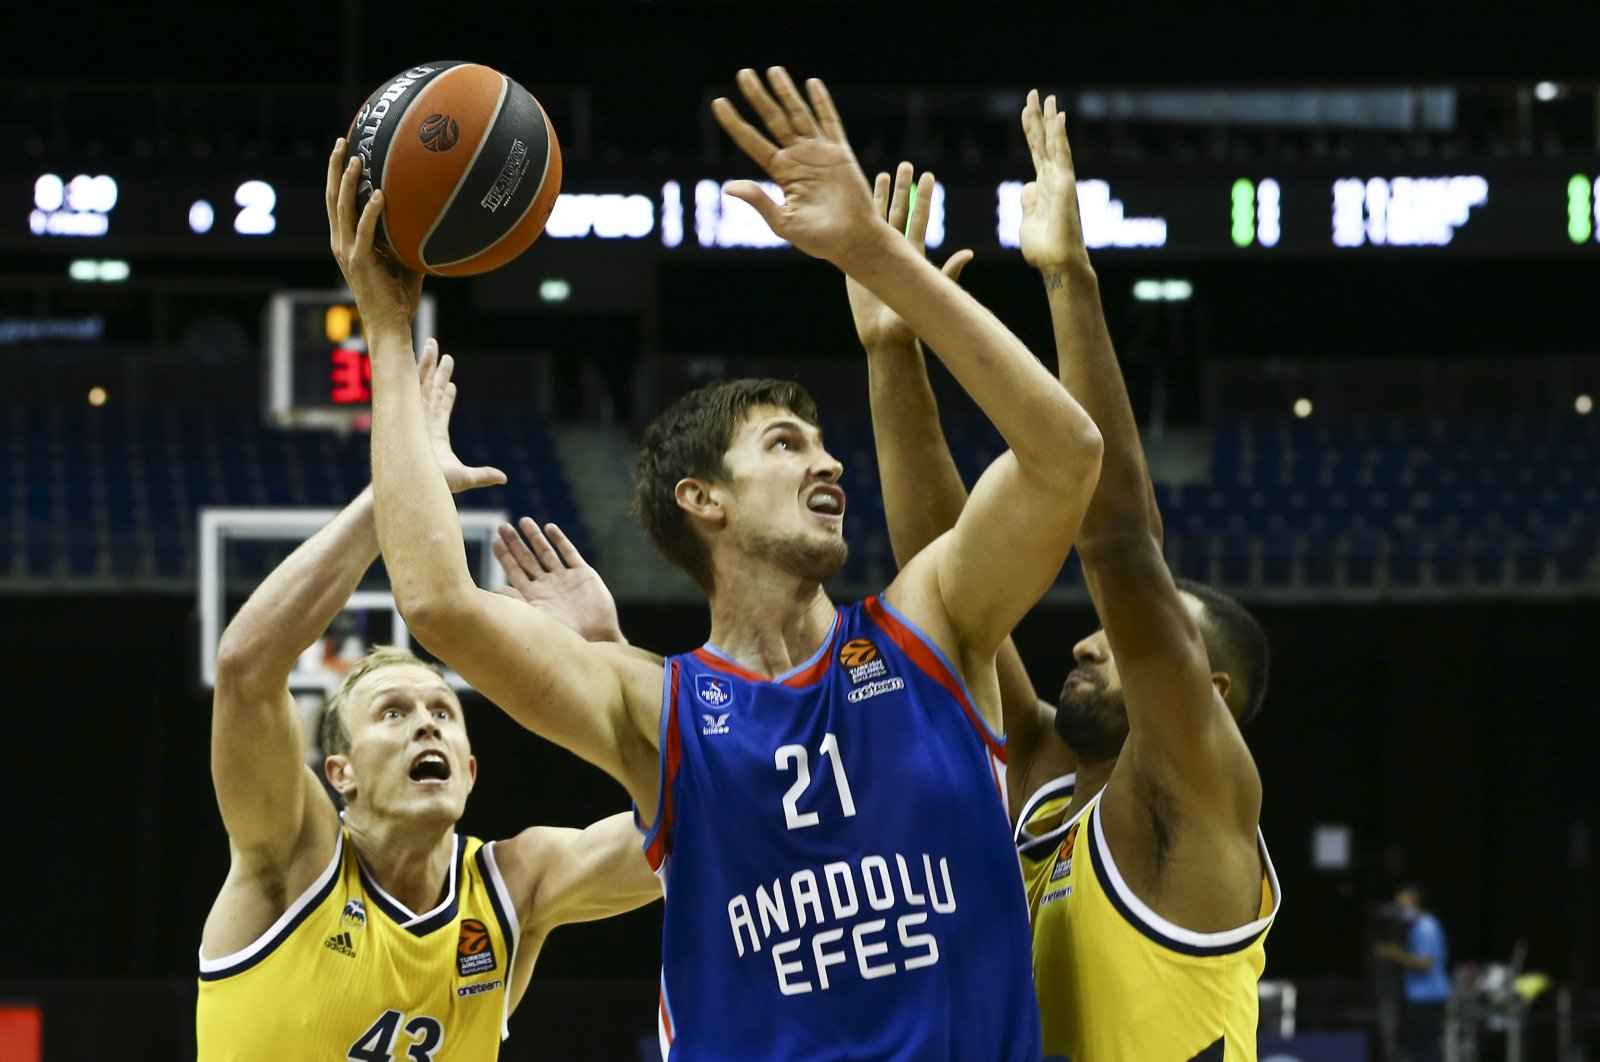 Anadolu Efes' Pleiss in action during a match against Alba Berlin, in Berlin, Germany, Oct. 13, 2020. (AA Photo)